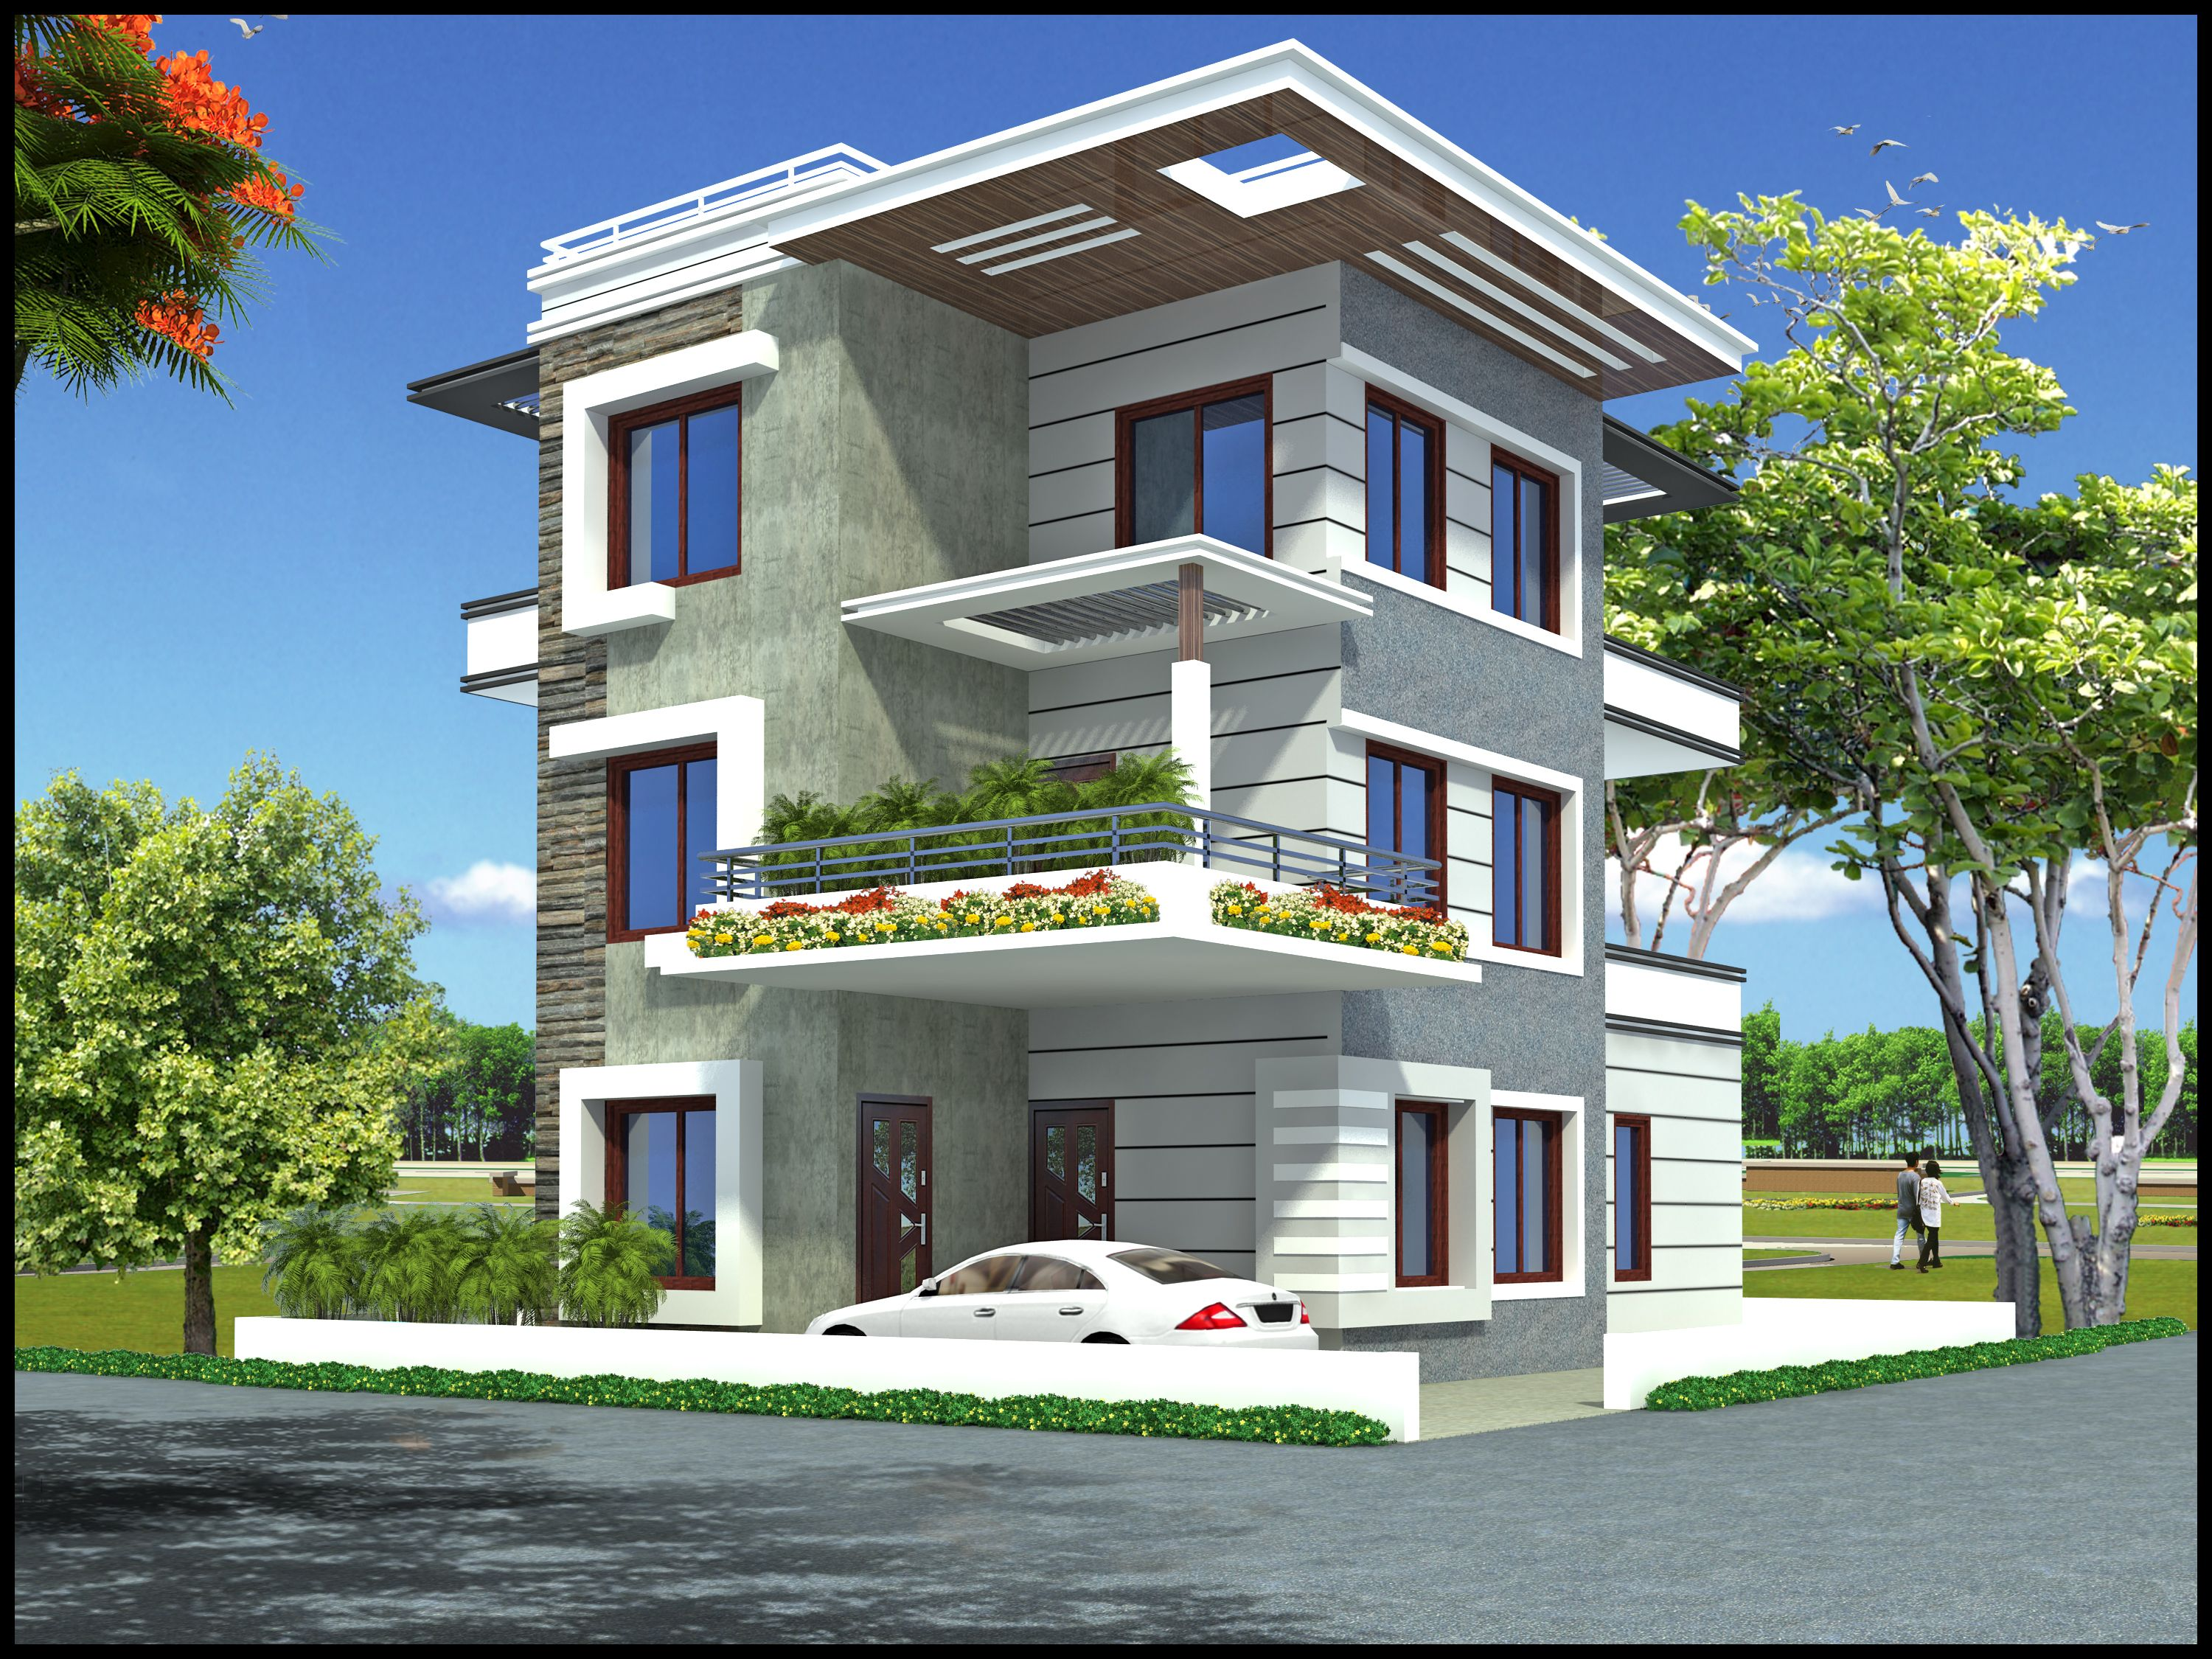 Pin By Vincent Gikonyo On House House Front Design Home Building Design Duplex House Plans